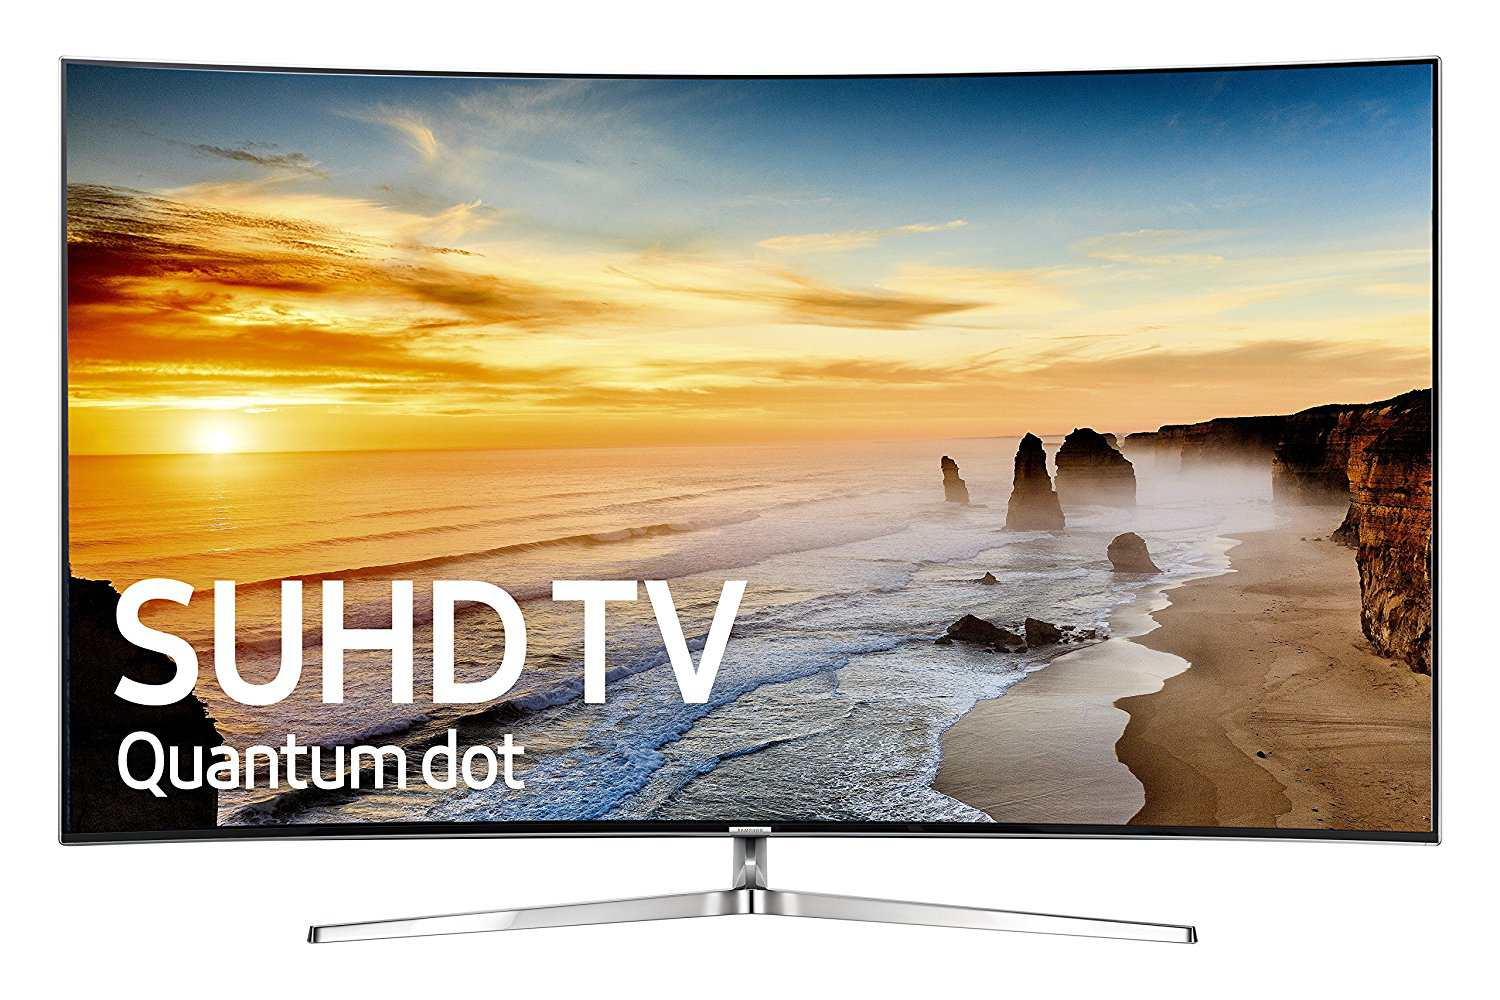 Best Curved Tv 2019 The 5 Best Curved TVs of 2019